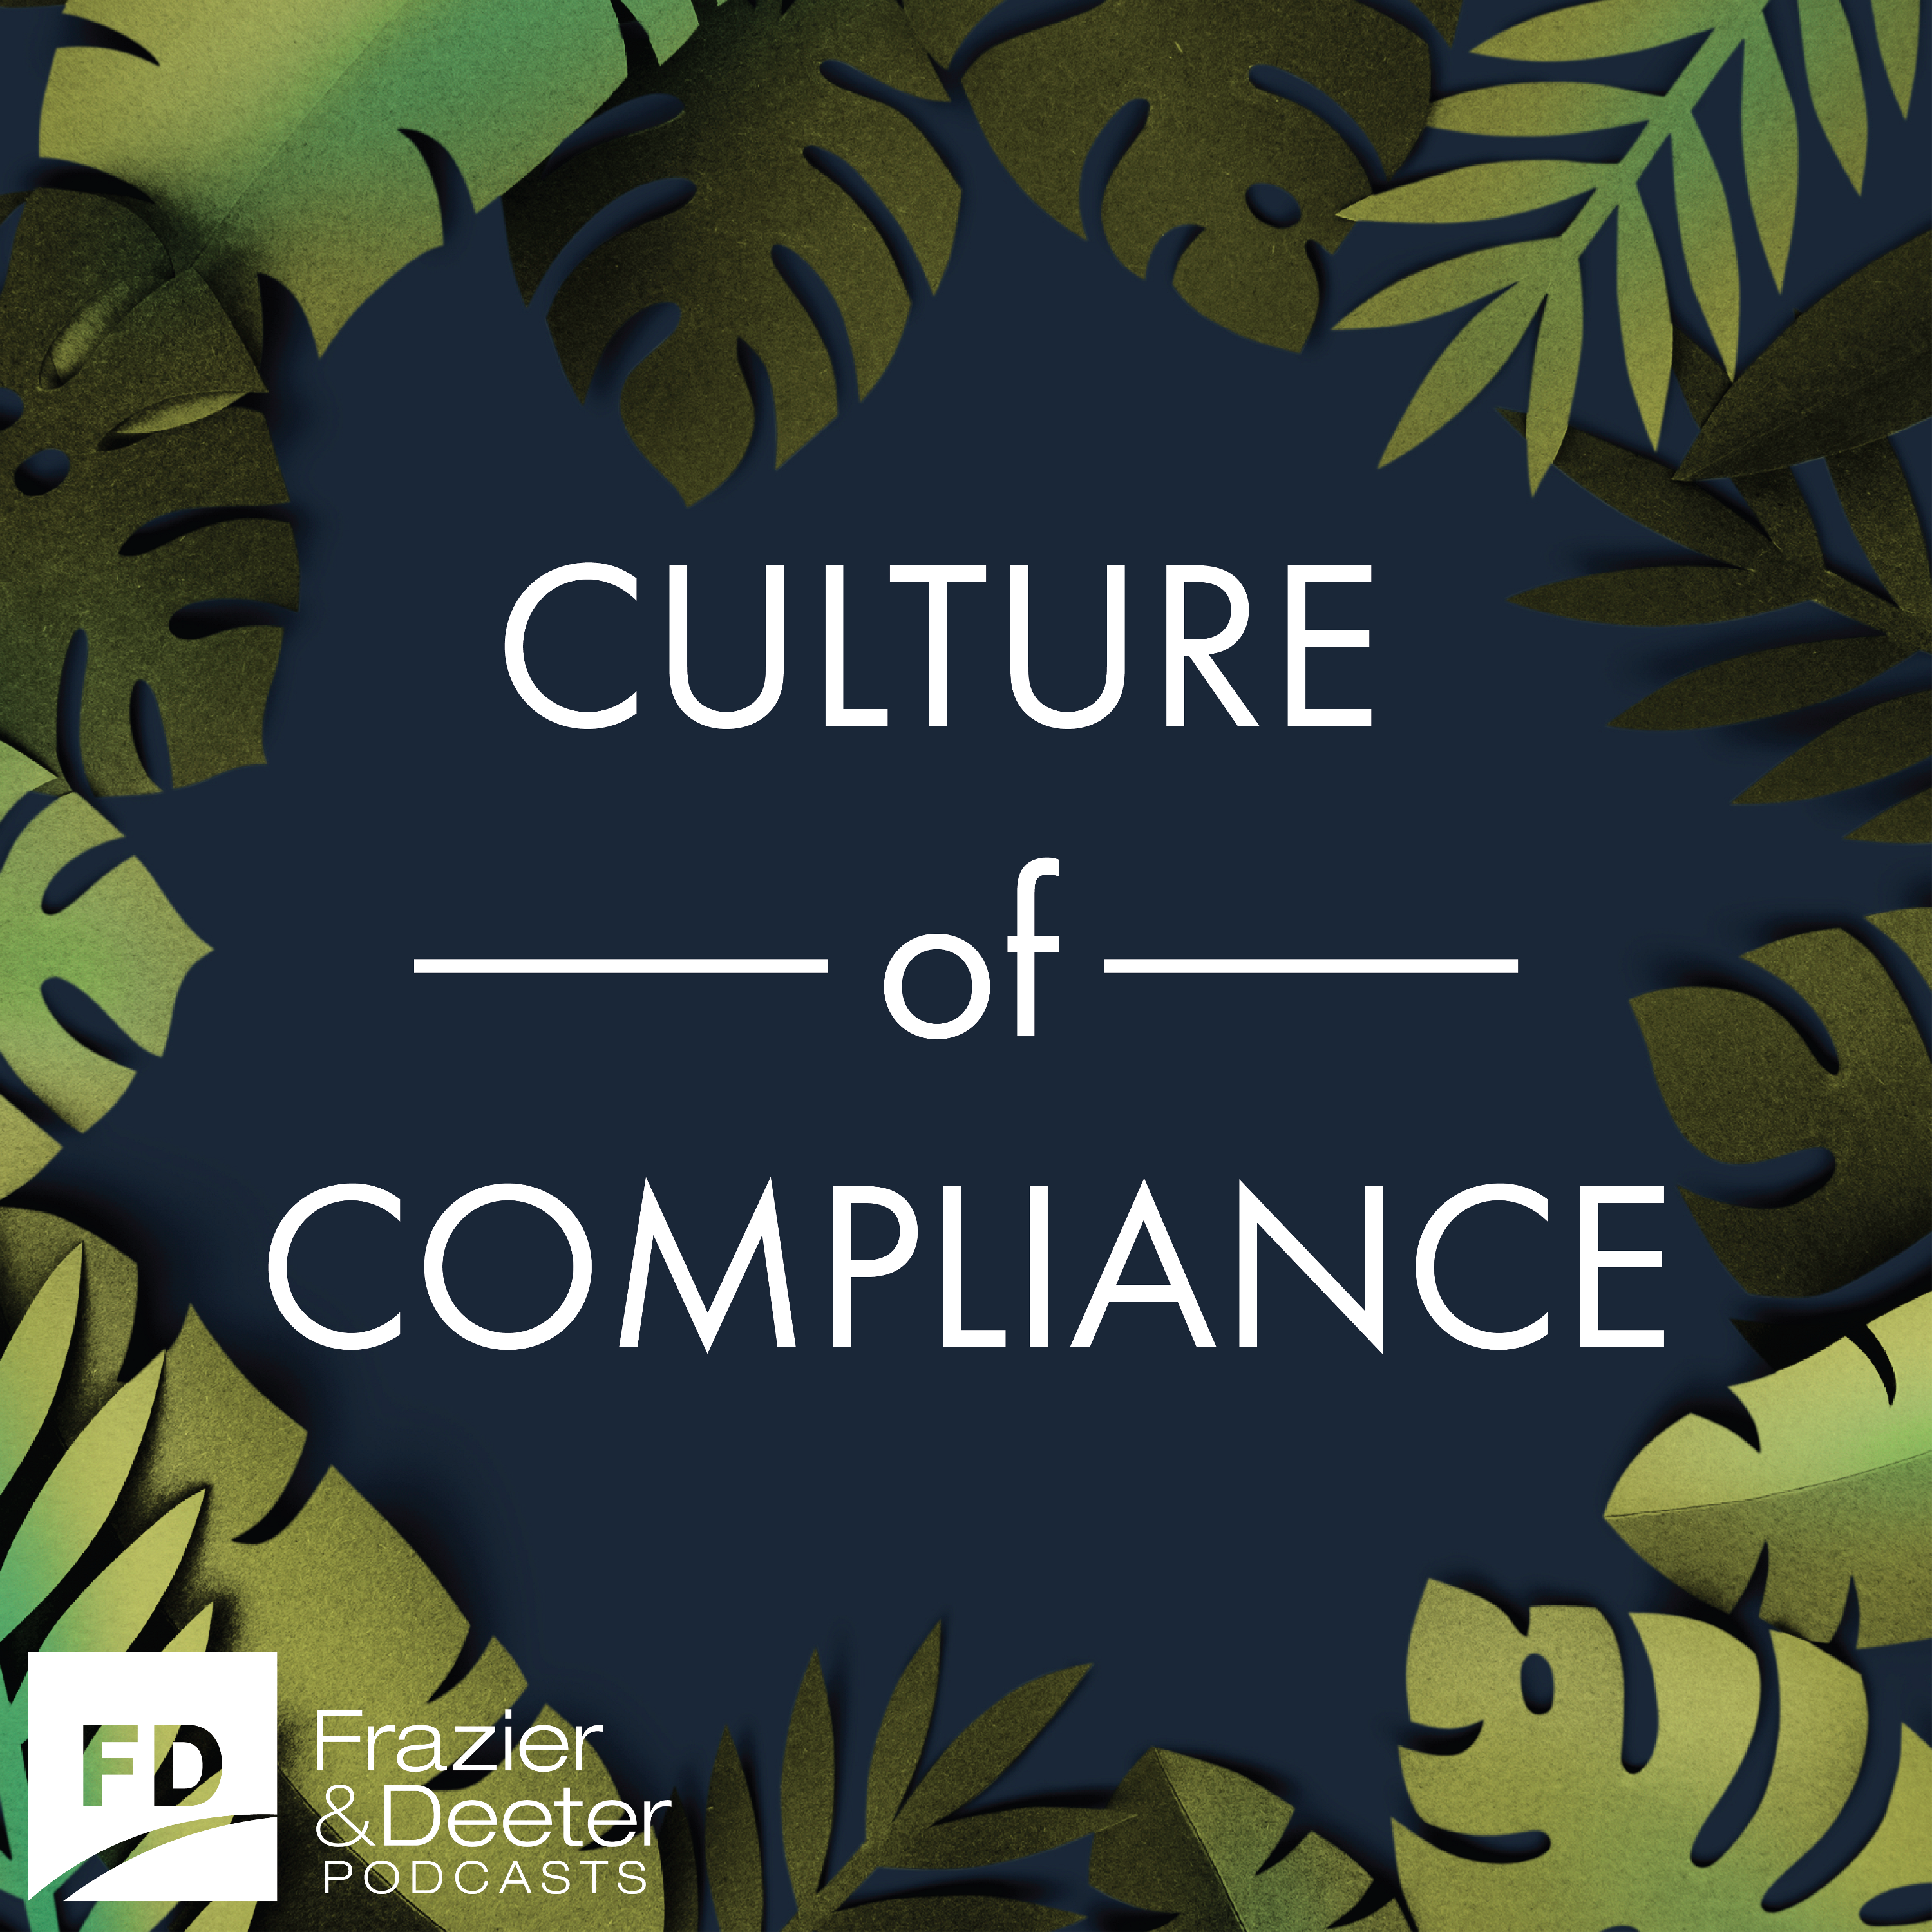 Culture of Compliance show image